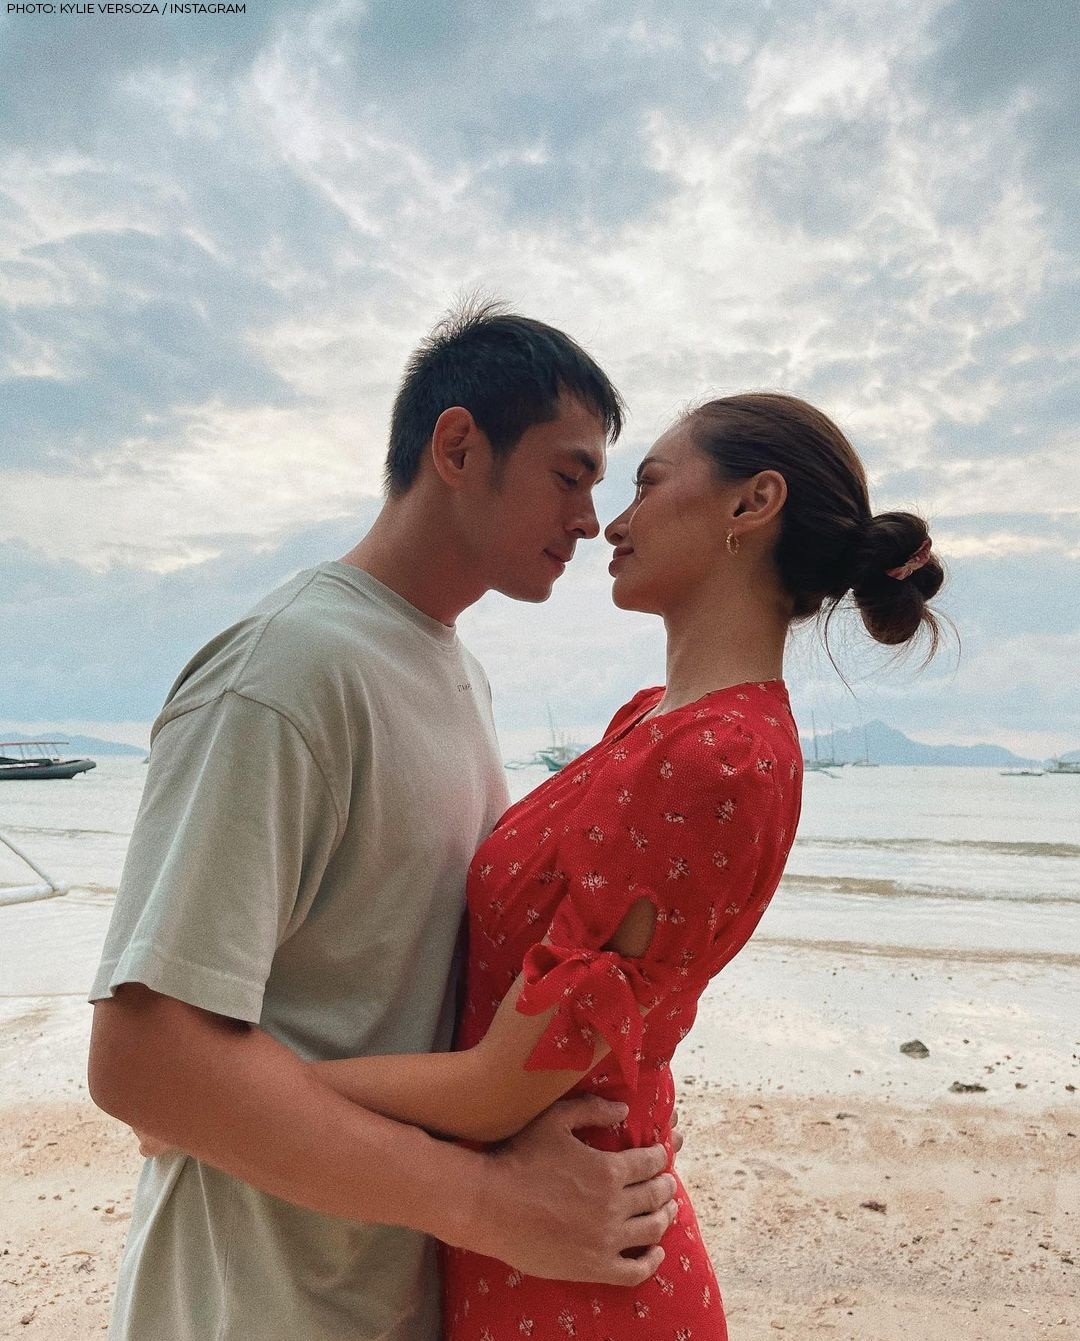 Kylie Verzosa and Jake Cuenca